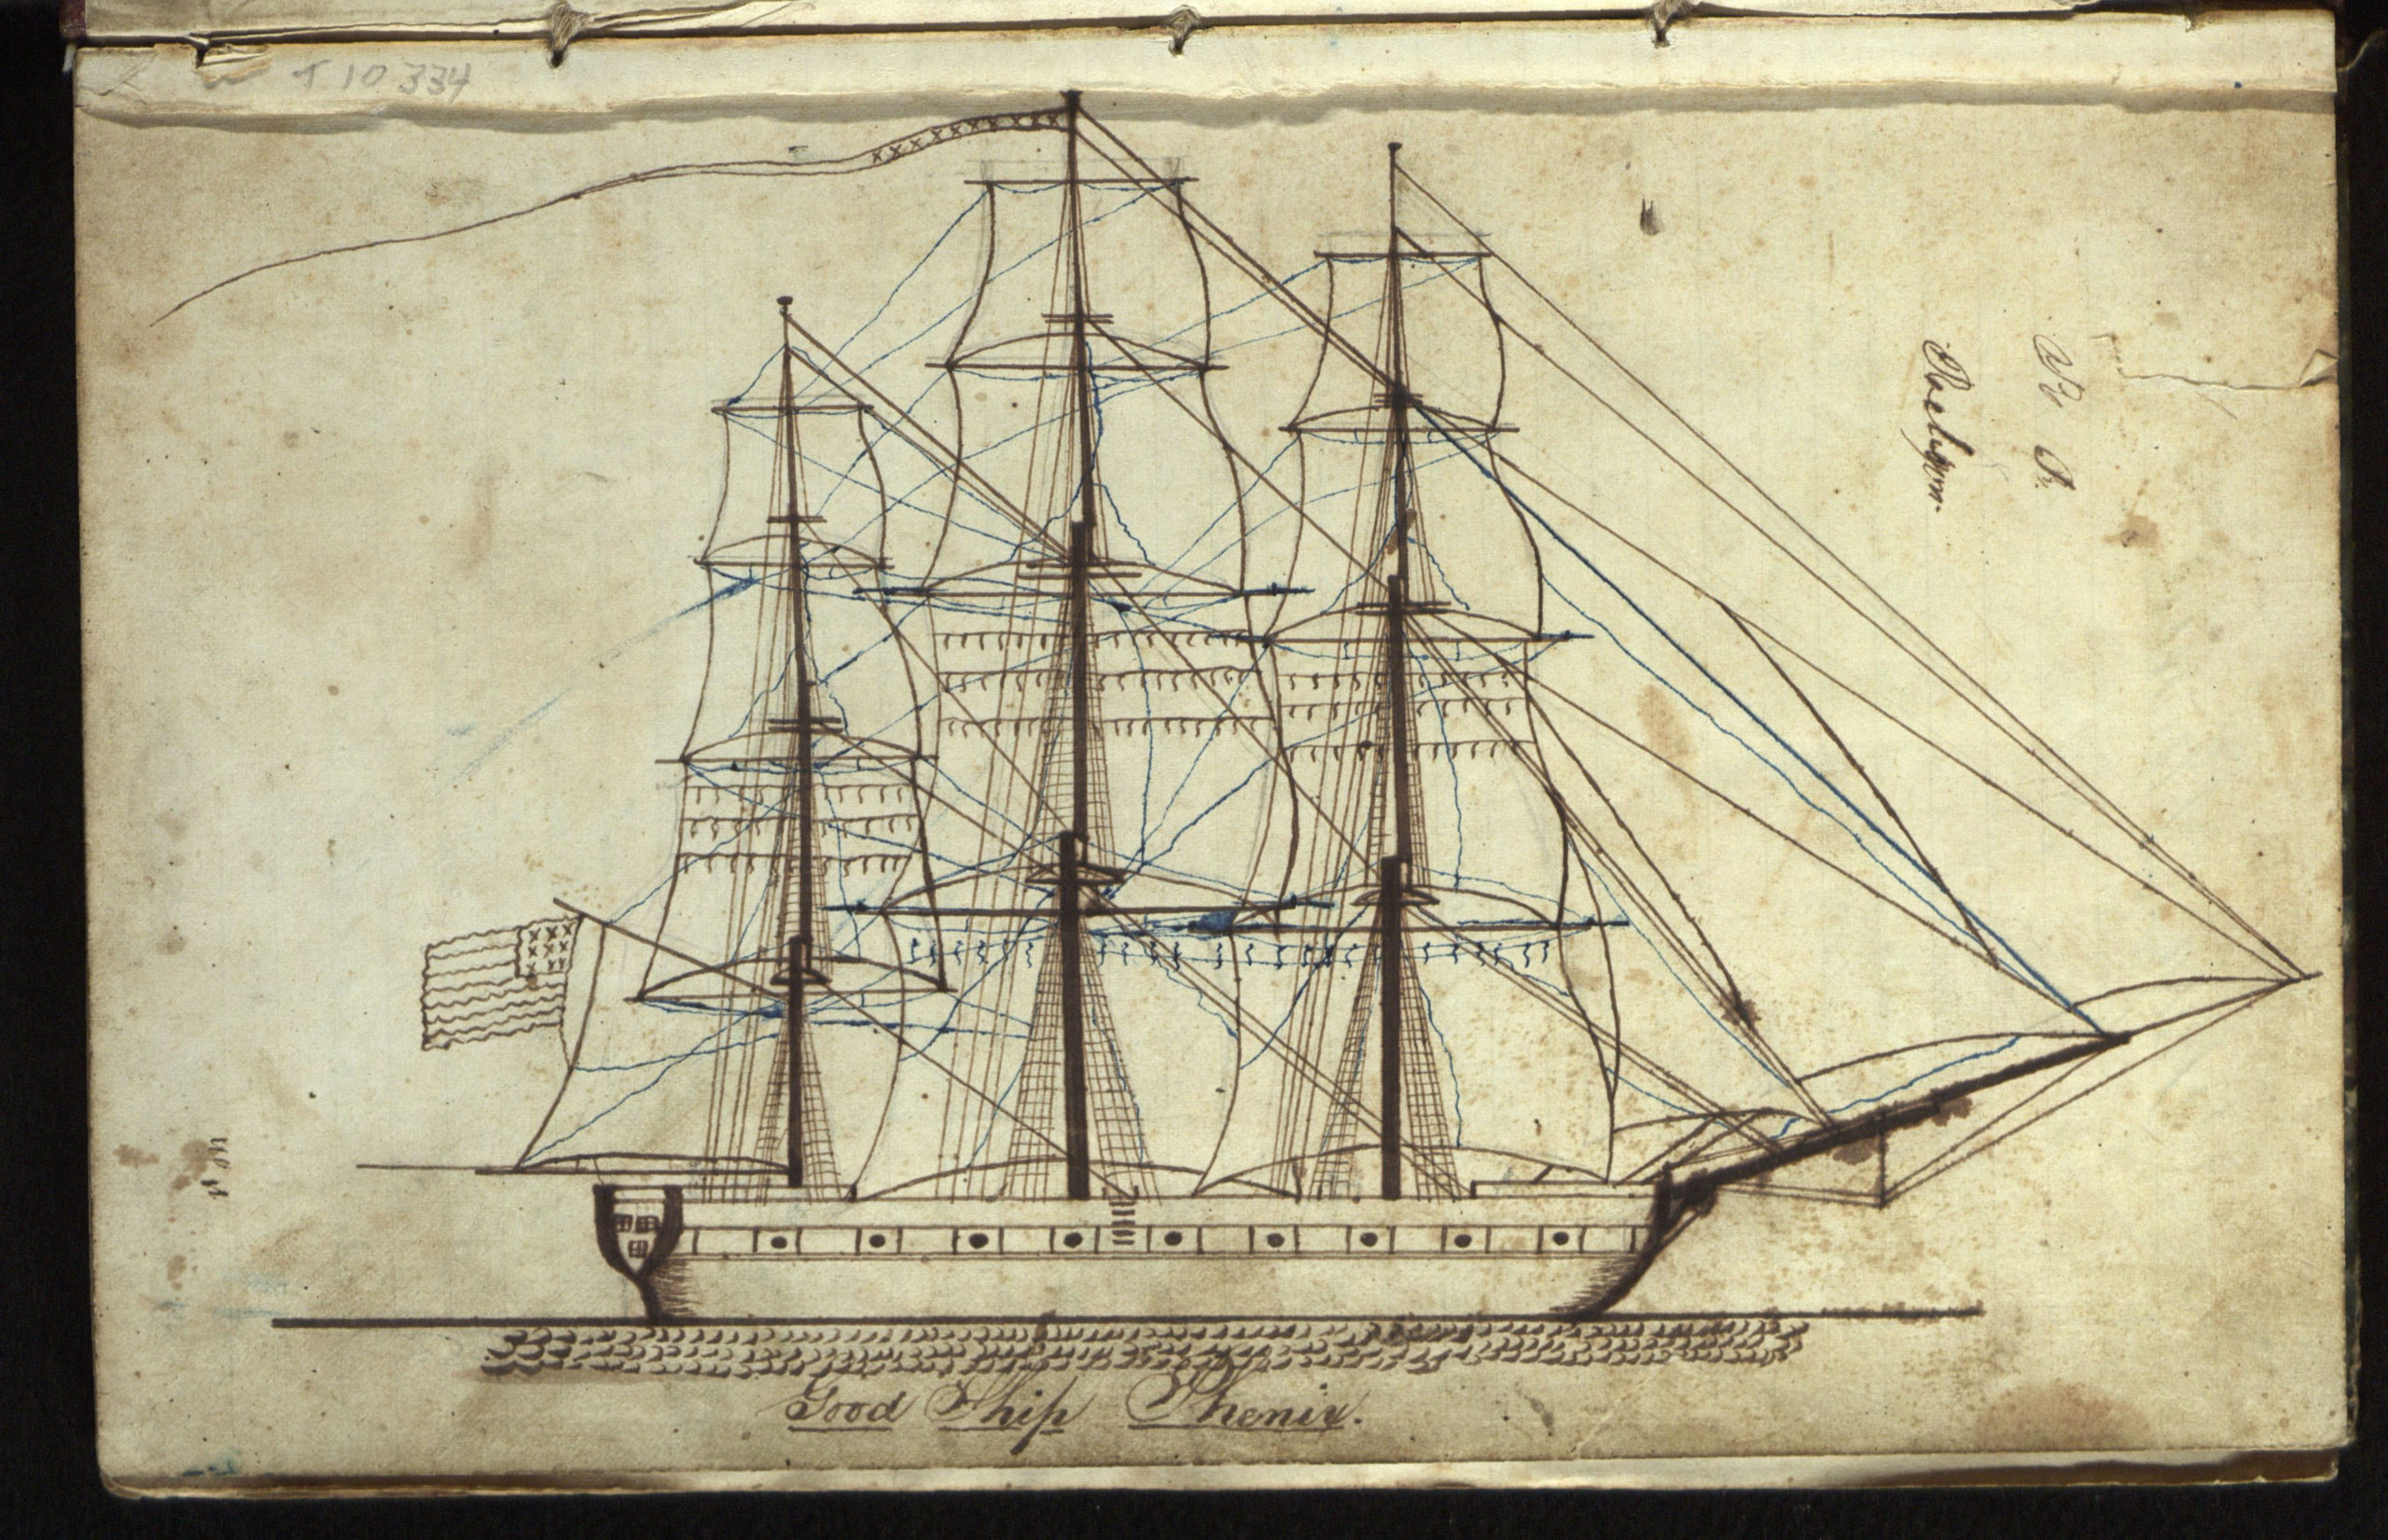 A rendering of the  whaling ship Phenix from the pages of its log. The Phenix was on a voyage from Sag Harbor to the Northwest Coast, 10 October 1844 to 5 June 1847.   COURTESY  EAST HAMPTON LIBRARY, LONG ISLAND COLLECTION